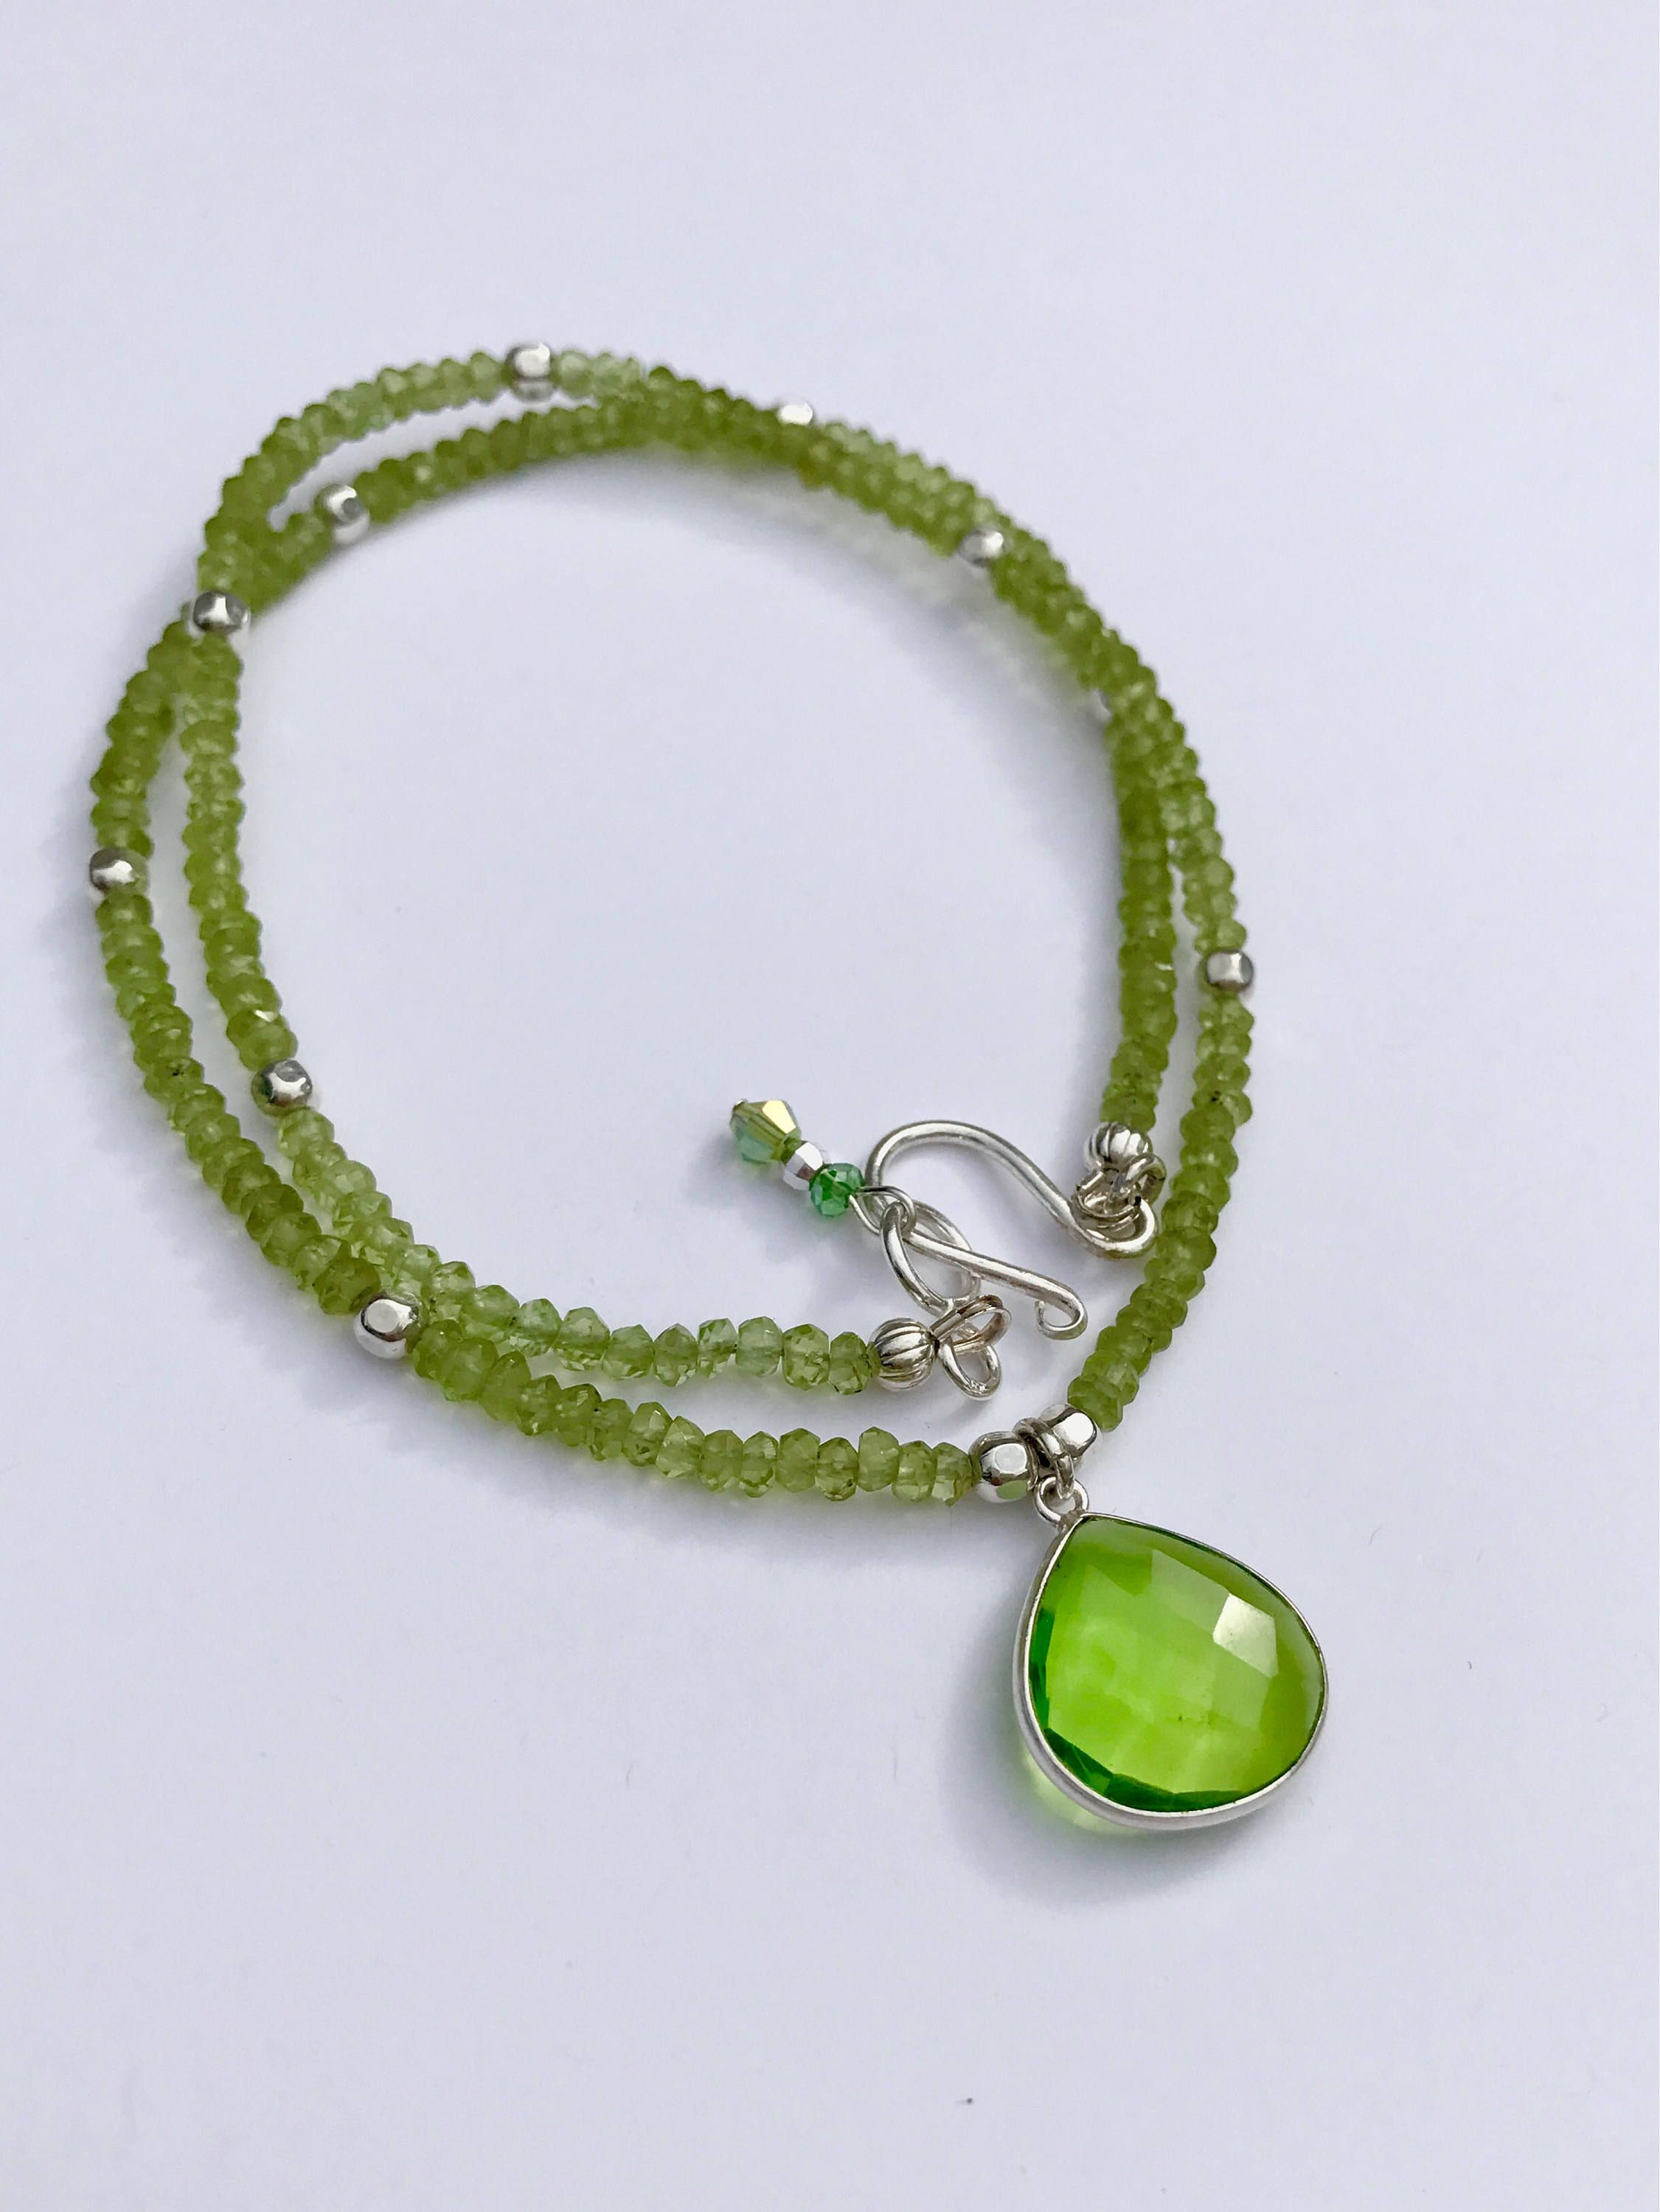 birthstone peridot en august of sterling and amp necklace london links hires gb mini silver charm